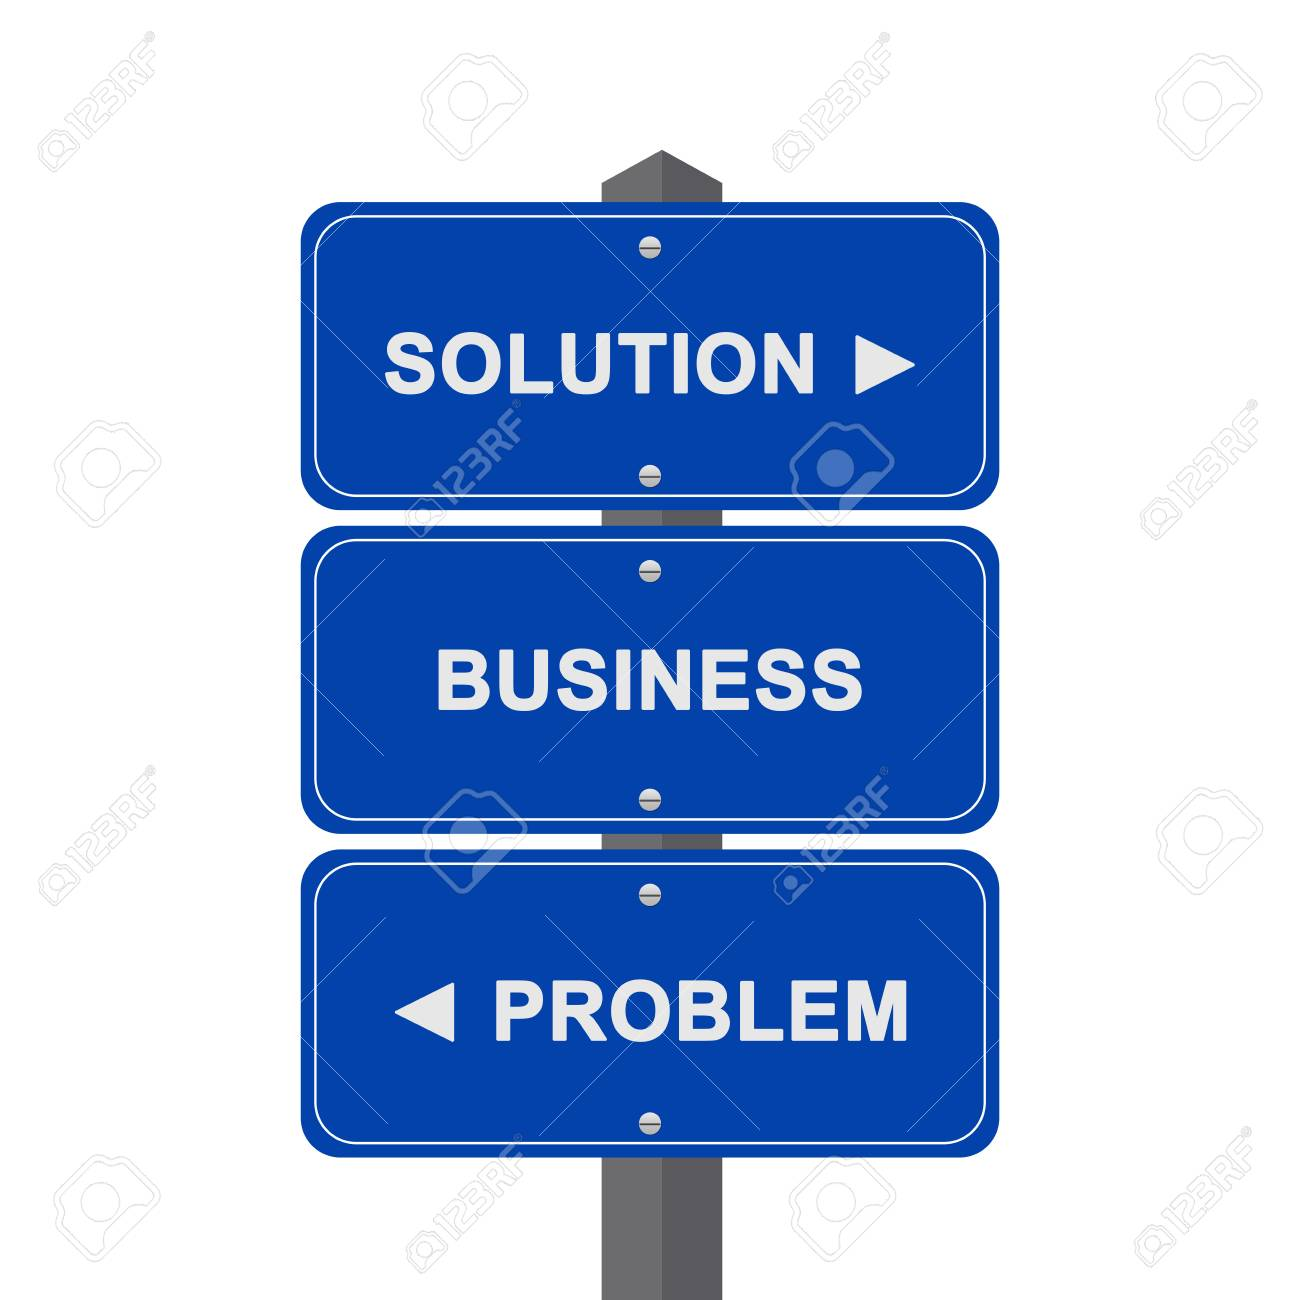 Business Concept Present By Blue Street Sign Pointing to Solution, Business And Problem Isolated On White Background Stock Photo - 17979055